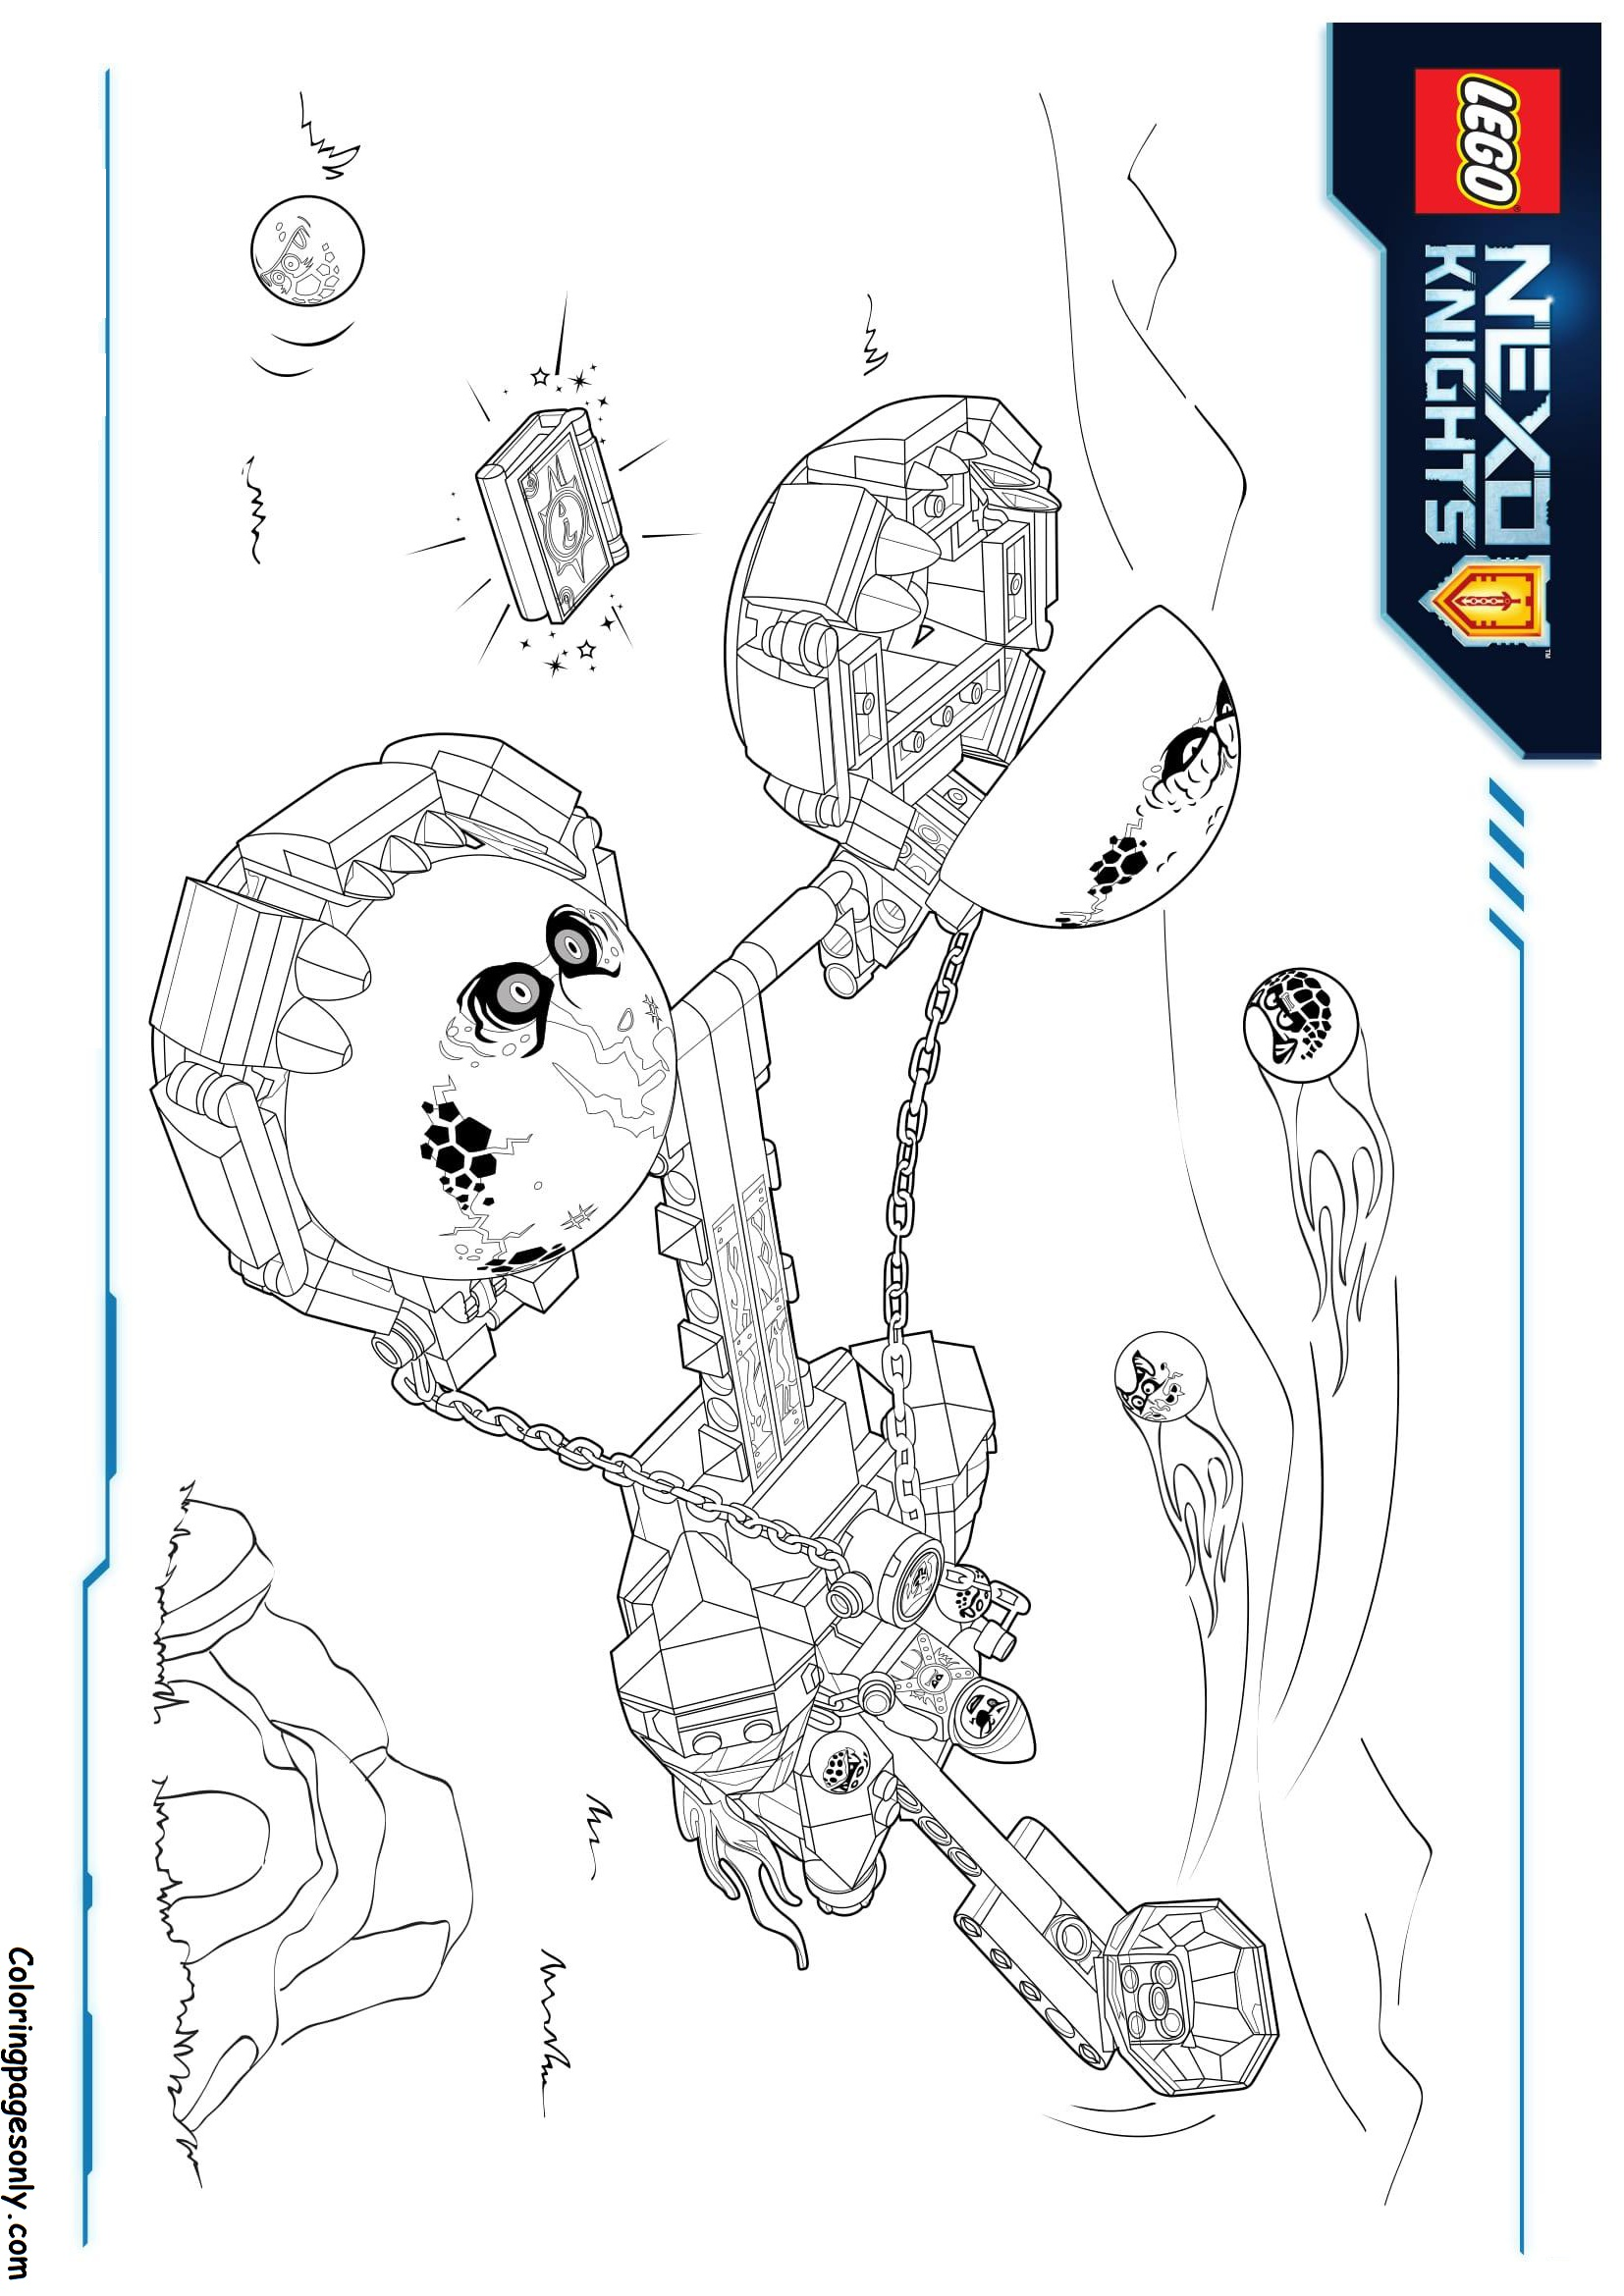 Lego Nexo Knights Monster Coloring Page Free Coloring Pages line